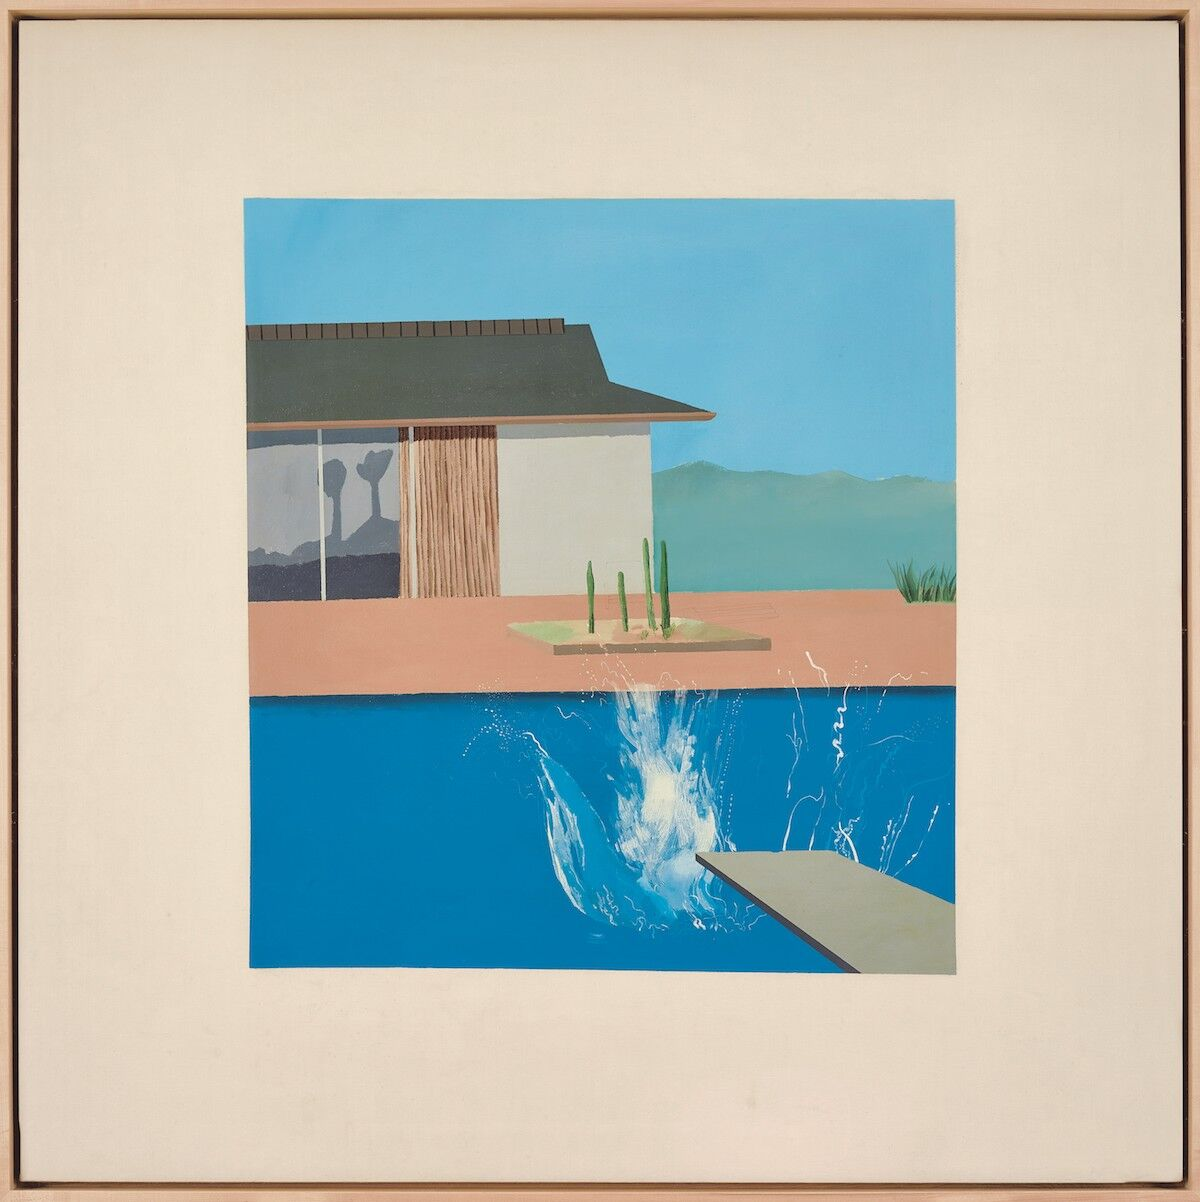 David Hockney, The Splash, 1966. Courtesy Sotheby's.